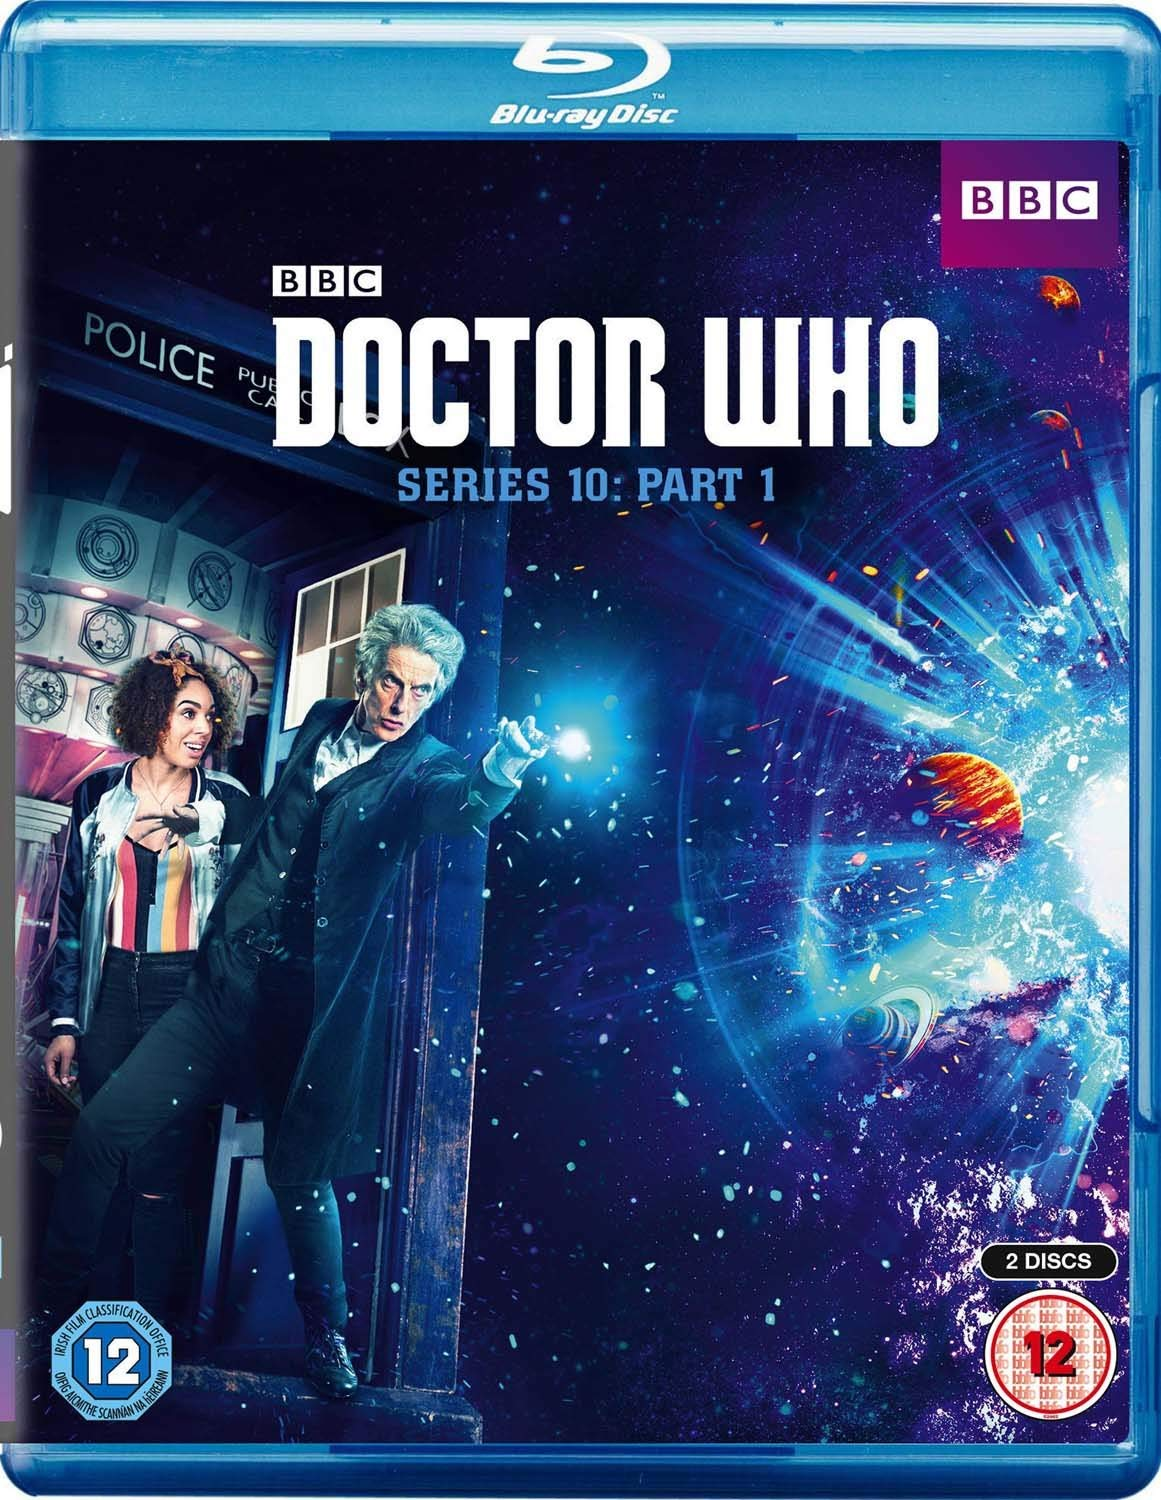 Series 10 Volume 1 BluRay